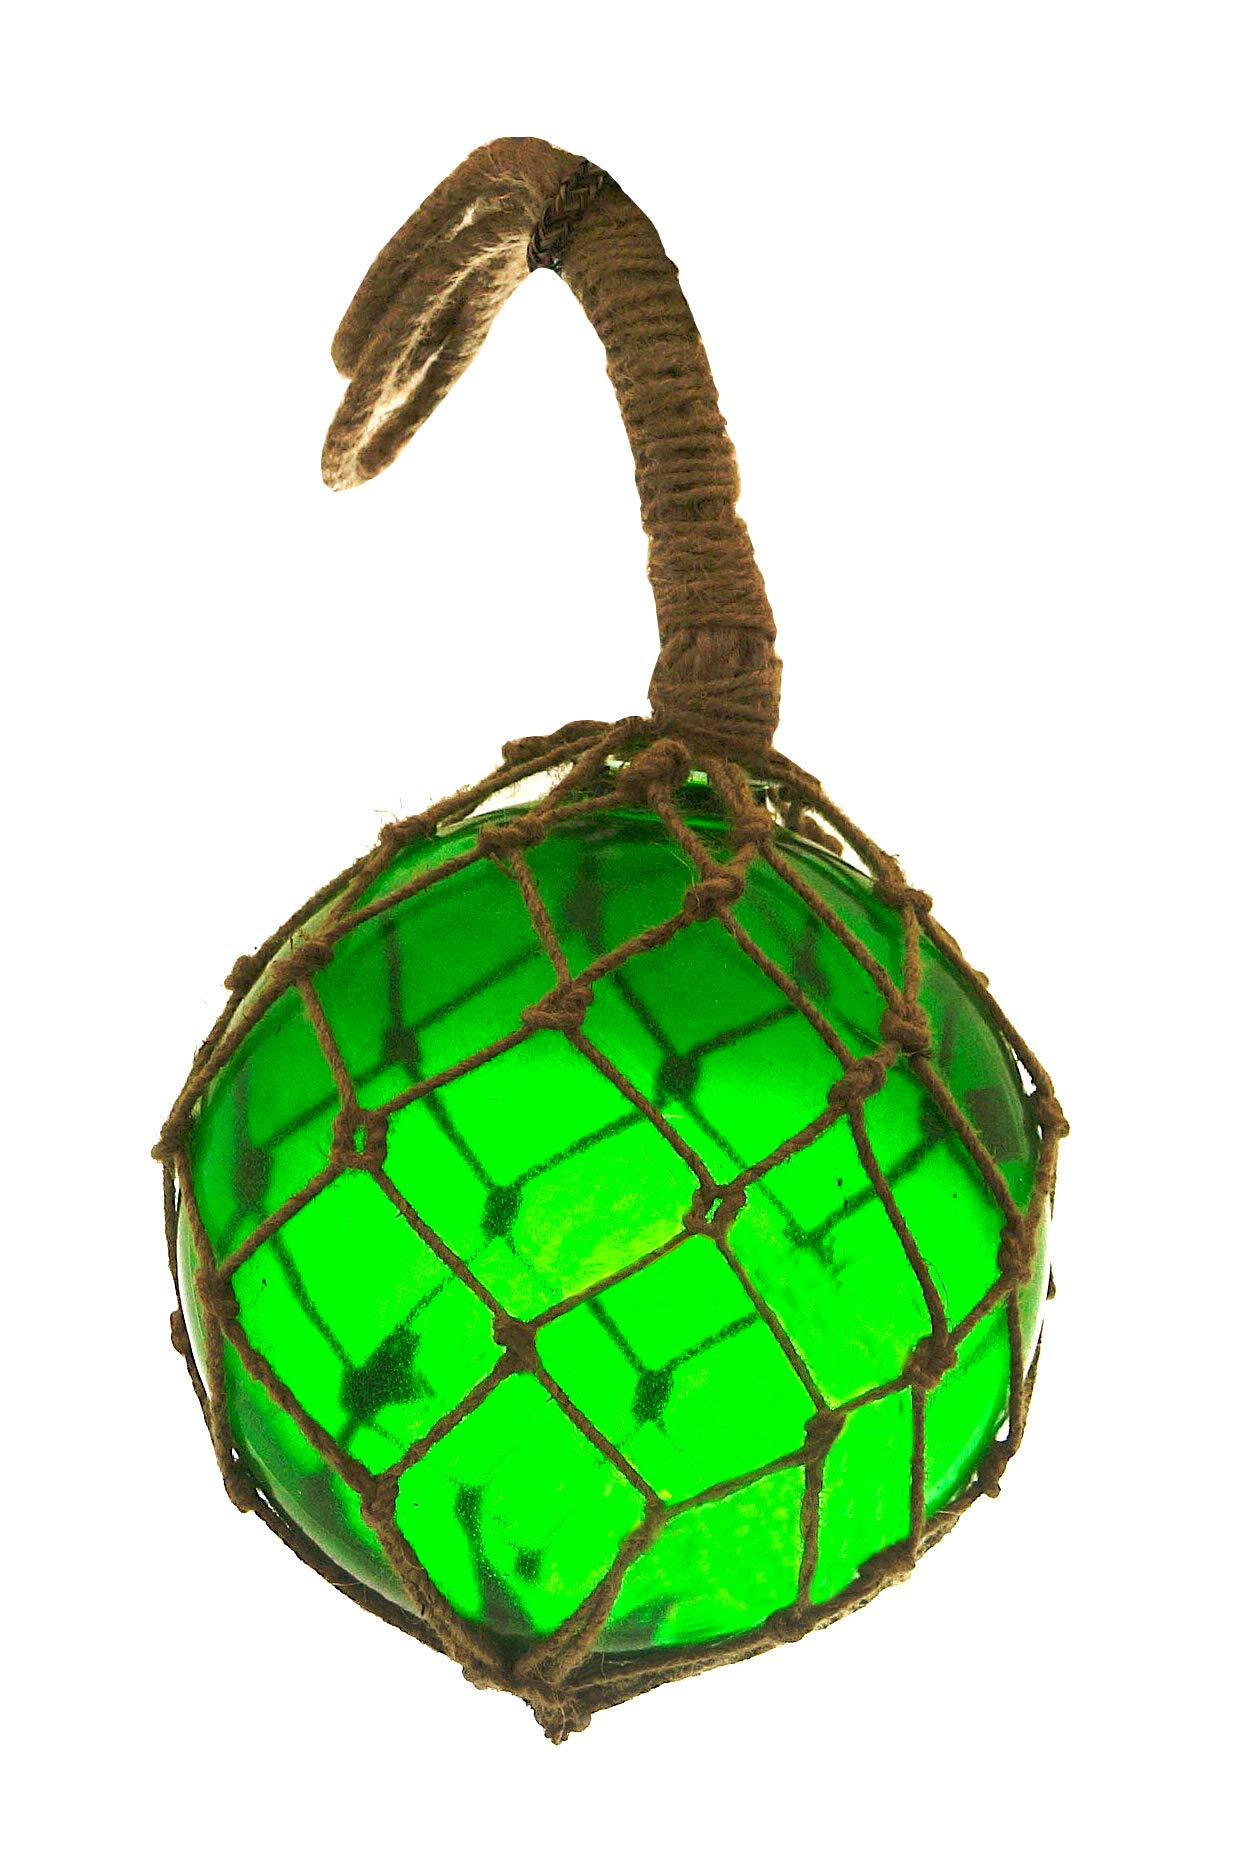 Nautical Specials MR 4801G-VC Nautical Collection Japanese Glass Floats Assorted Colors Family Fish Net Buoys Large Set (8'' Green) by Nautical Specials